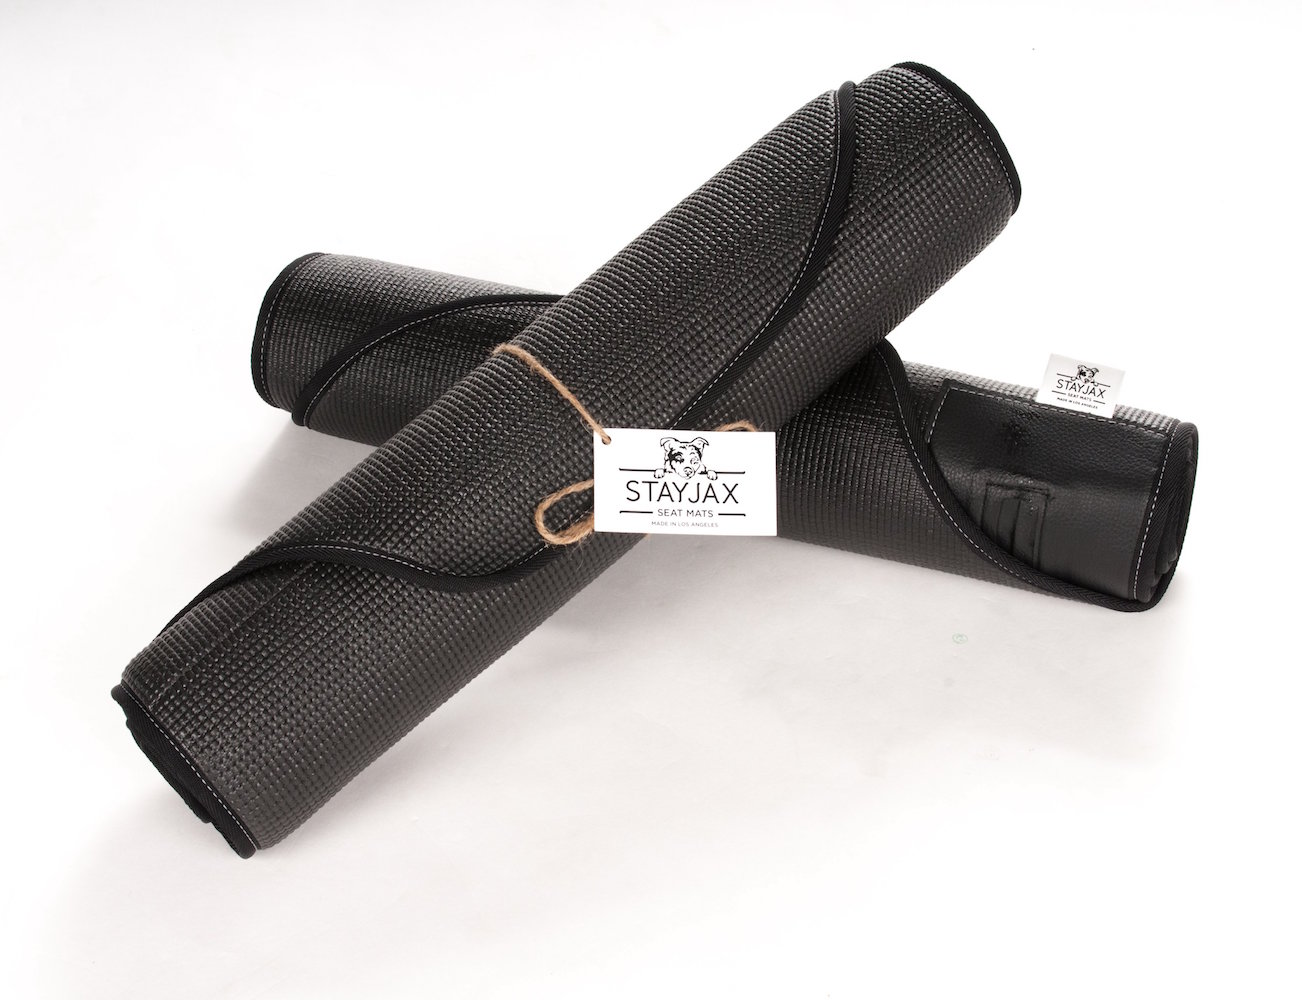 Stayjax Stealth Seat Mat for Your Dog